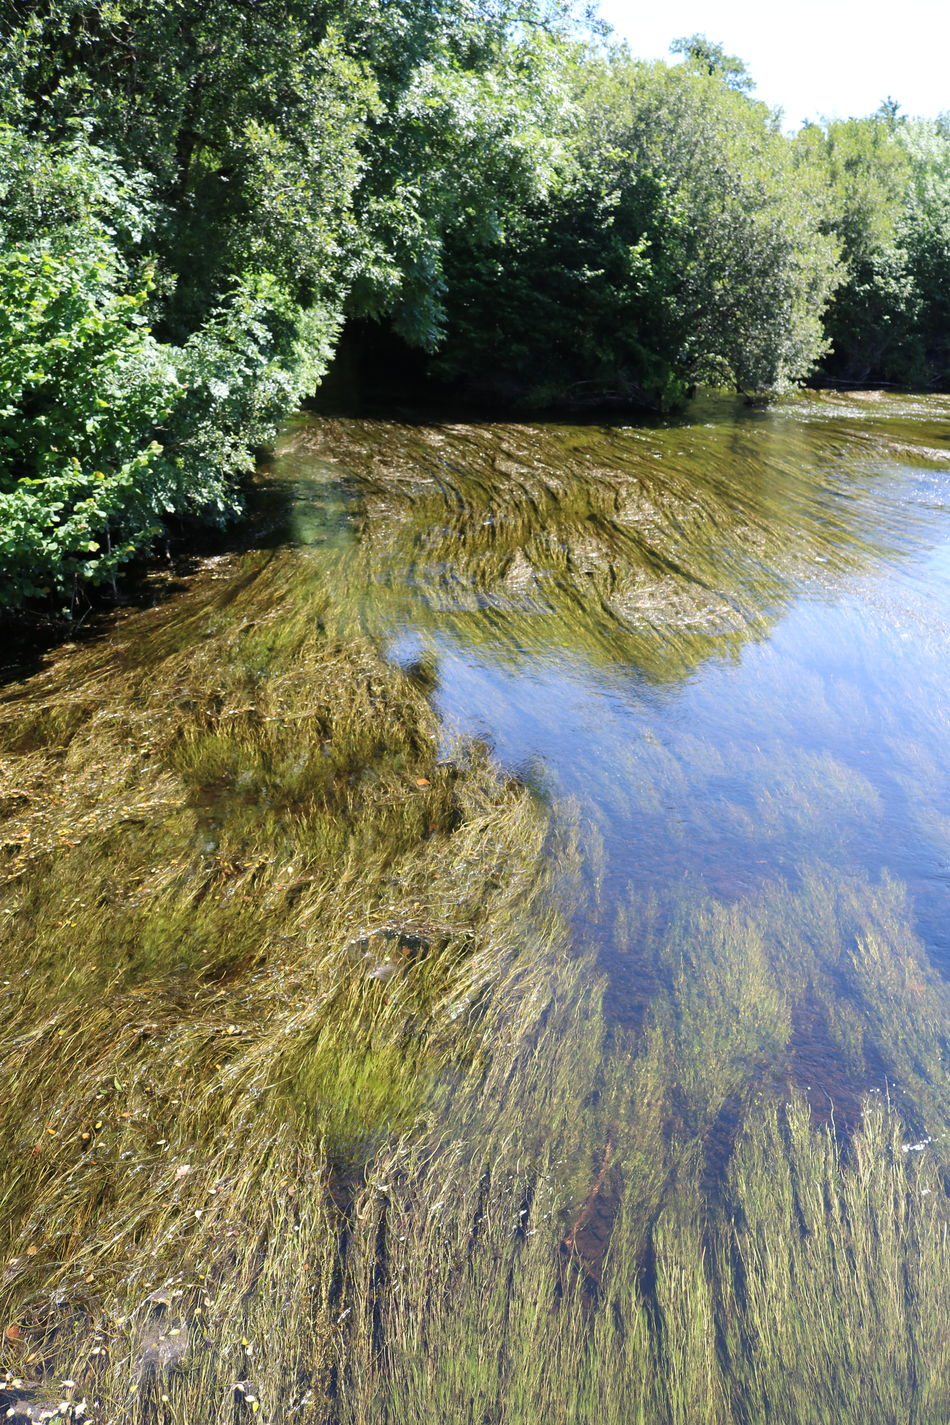 Beauty In Nature Day Flowing Water Grass Growth Ireland Landscape Macroom Nature No People Outdoors River Lee Scenics Sky Summer Tranquil Scene Tranquility Tree Water Weed